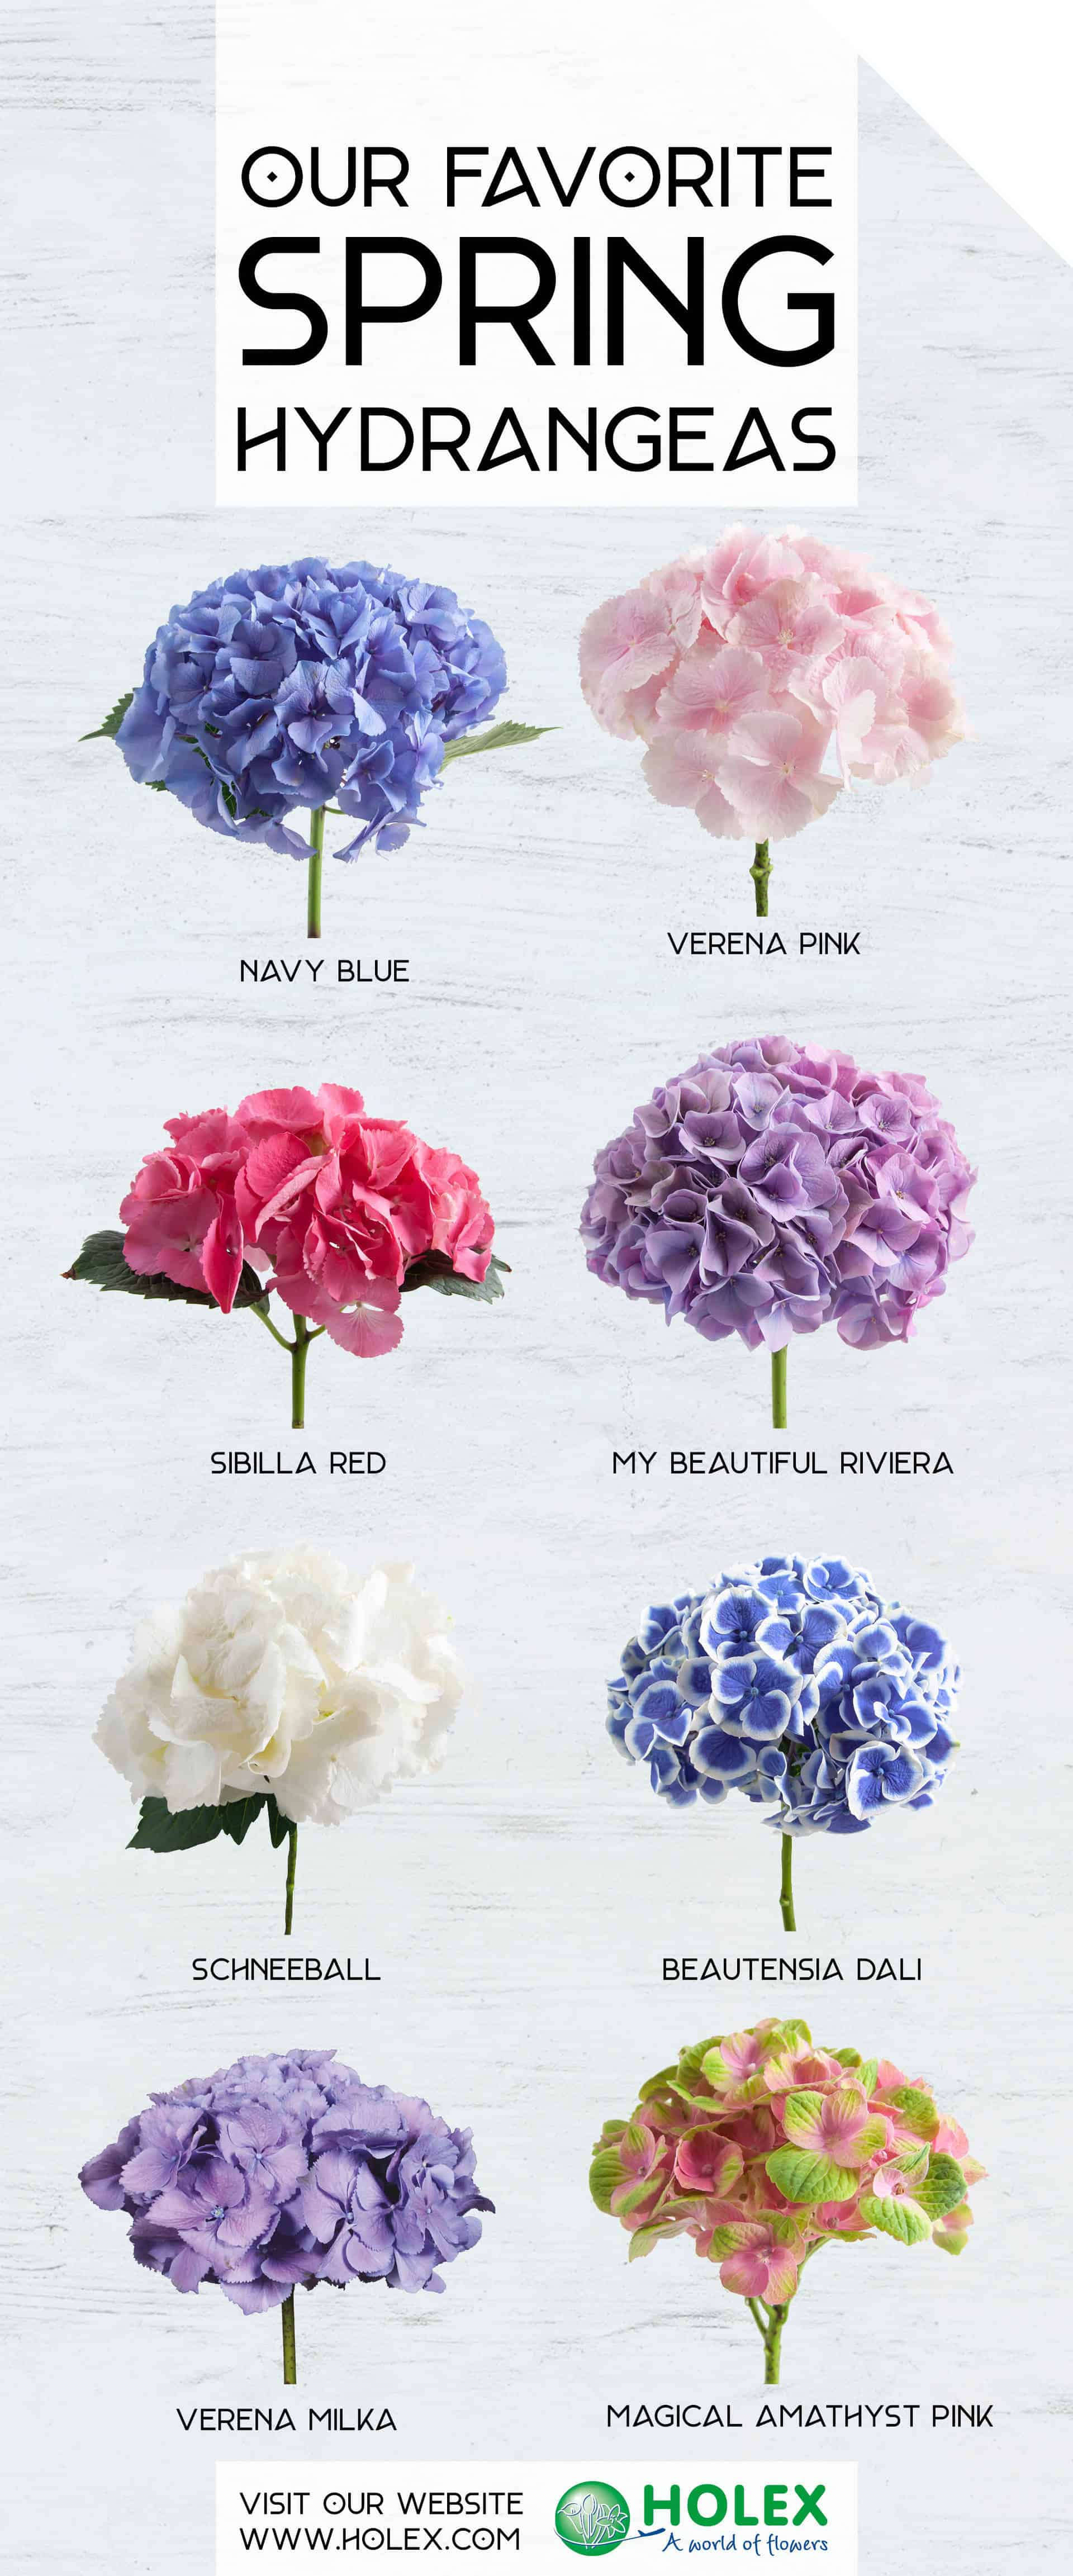 Our Favorite Spring Hydrangeas 2018